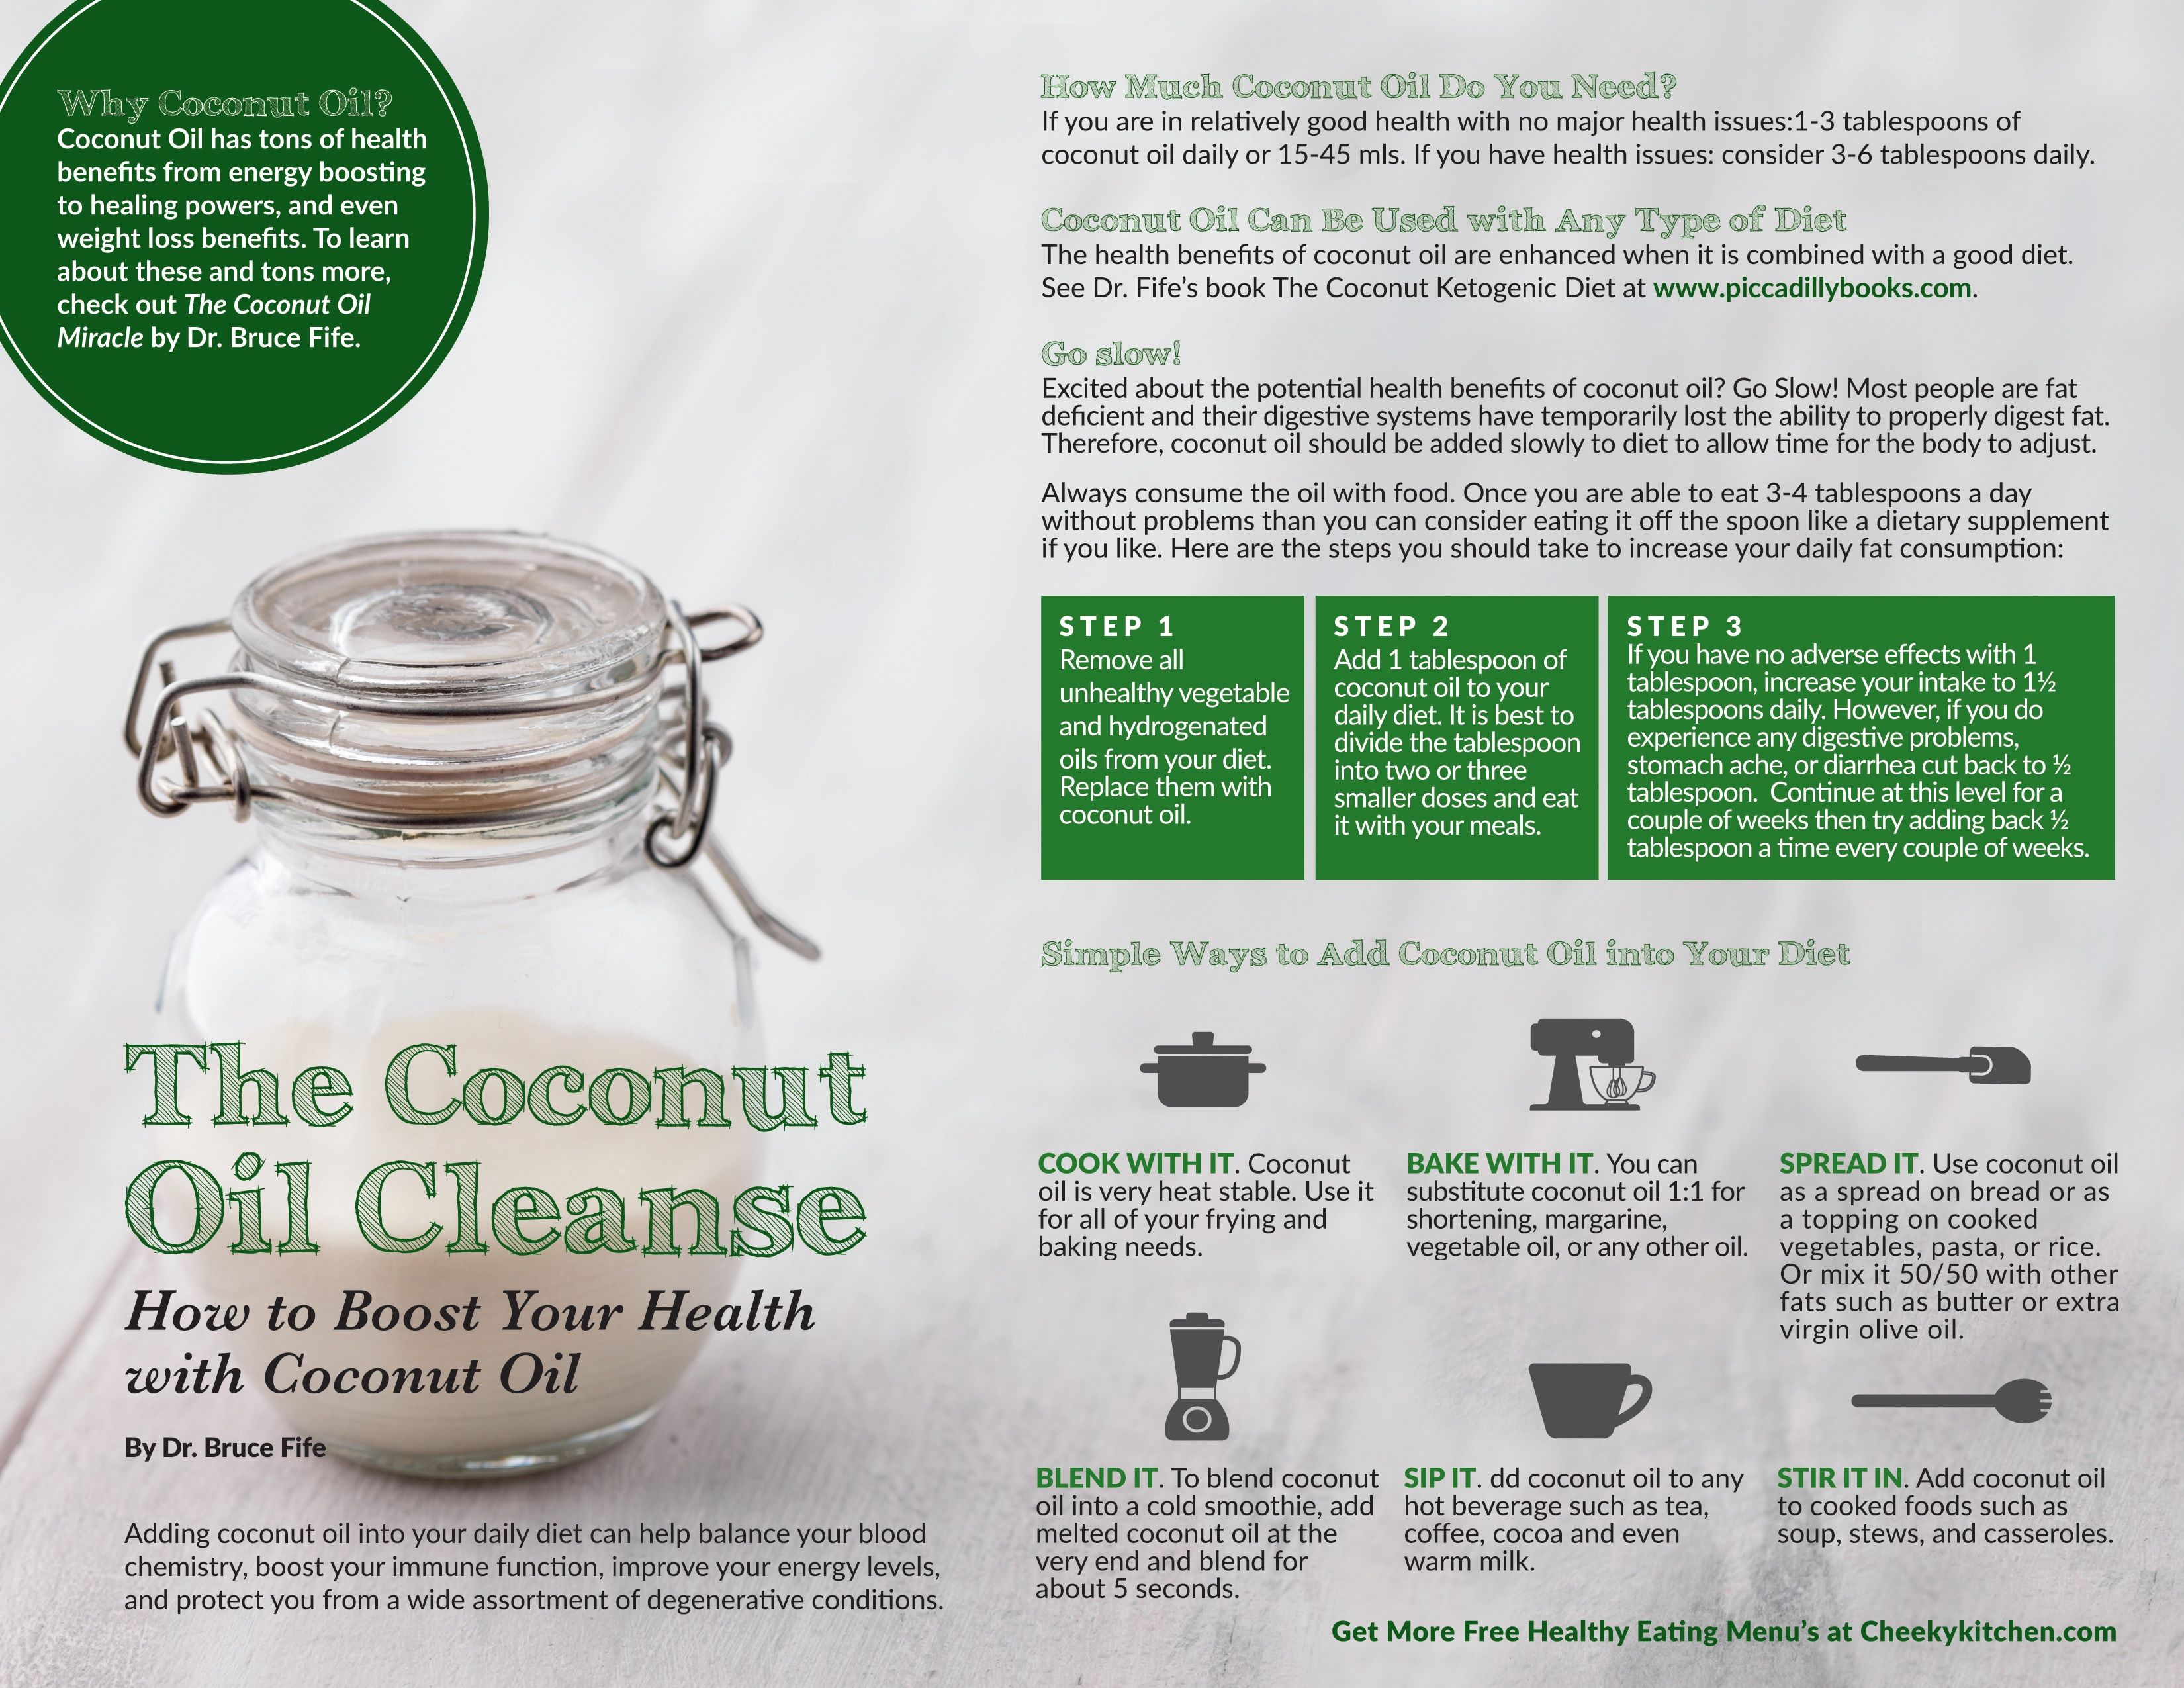 Coconut Cleanse! 6 Simple Ways To Add Coconut Oil To Your Diet ...